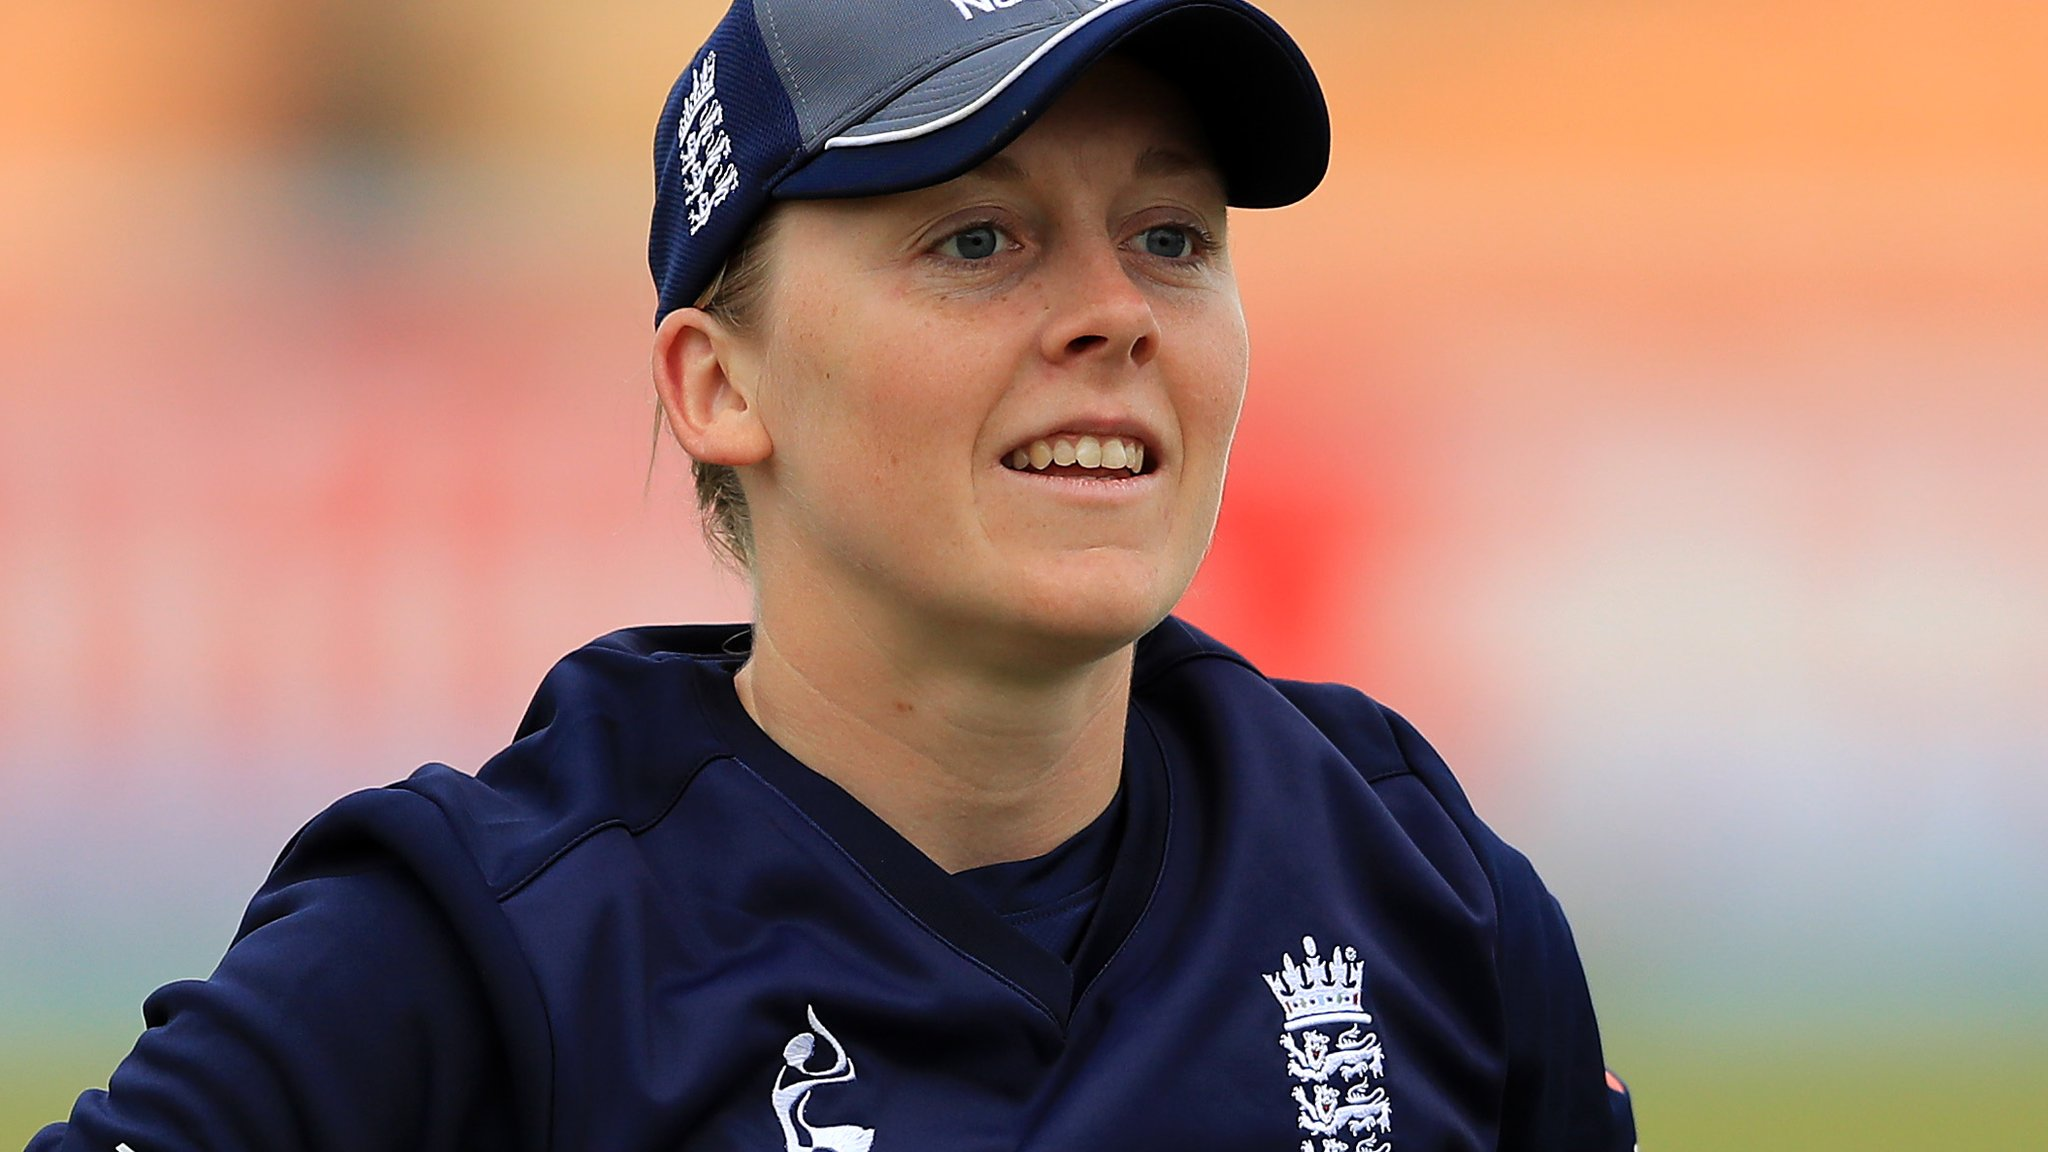 Women's Ashes: England captain Heather Knight says series is 'too close to call'